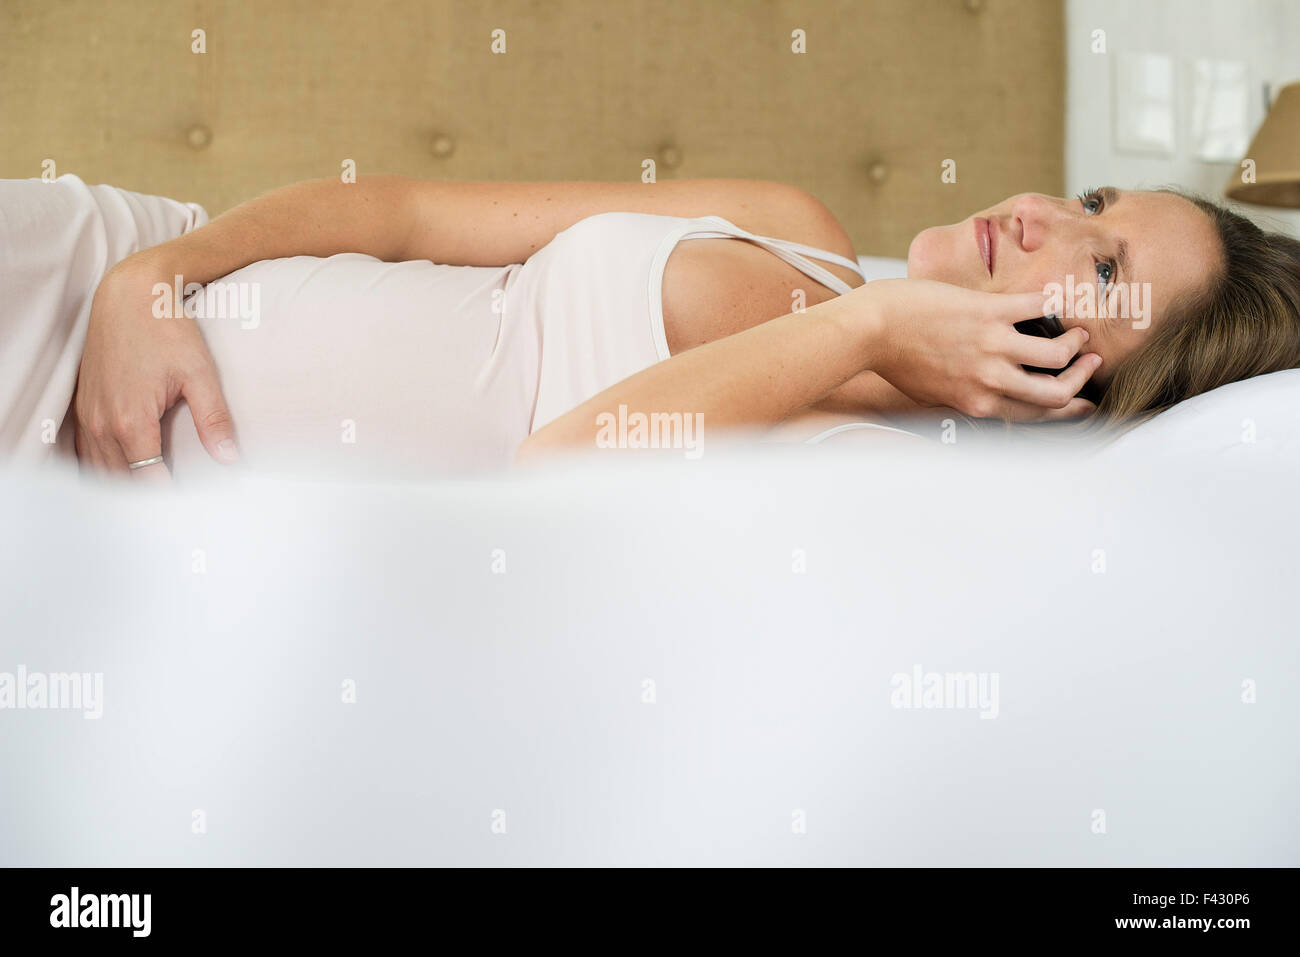 Pregnant woman using cell phone to stay in touch with friends and family - Stock Image